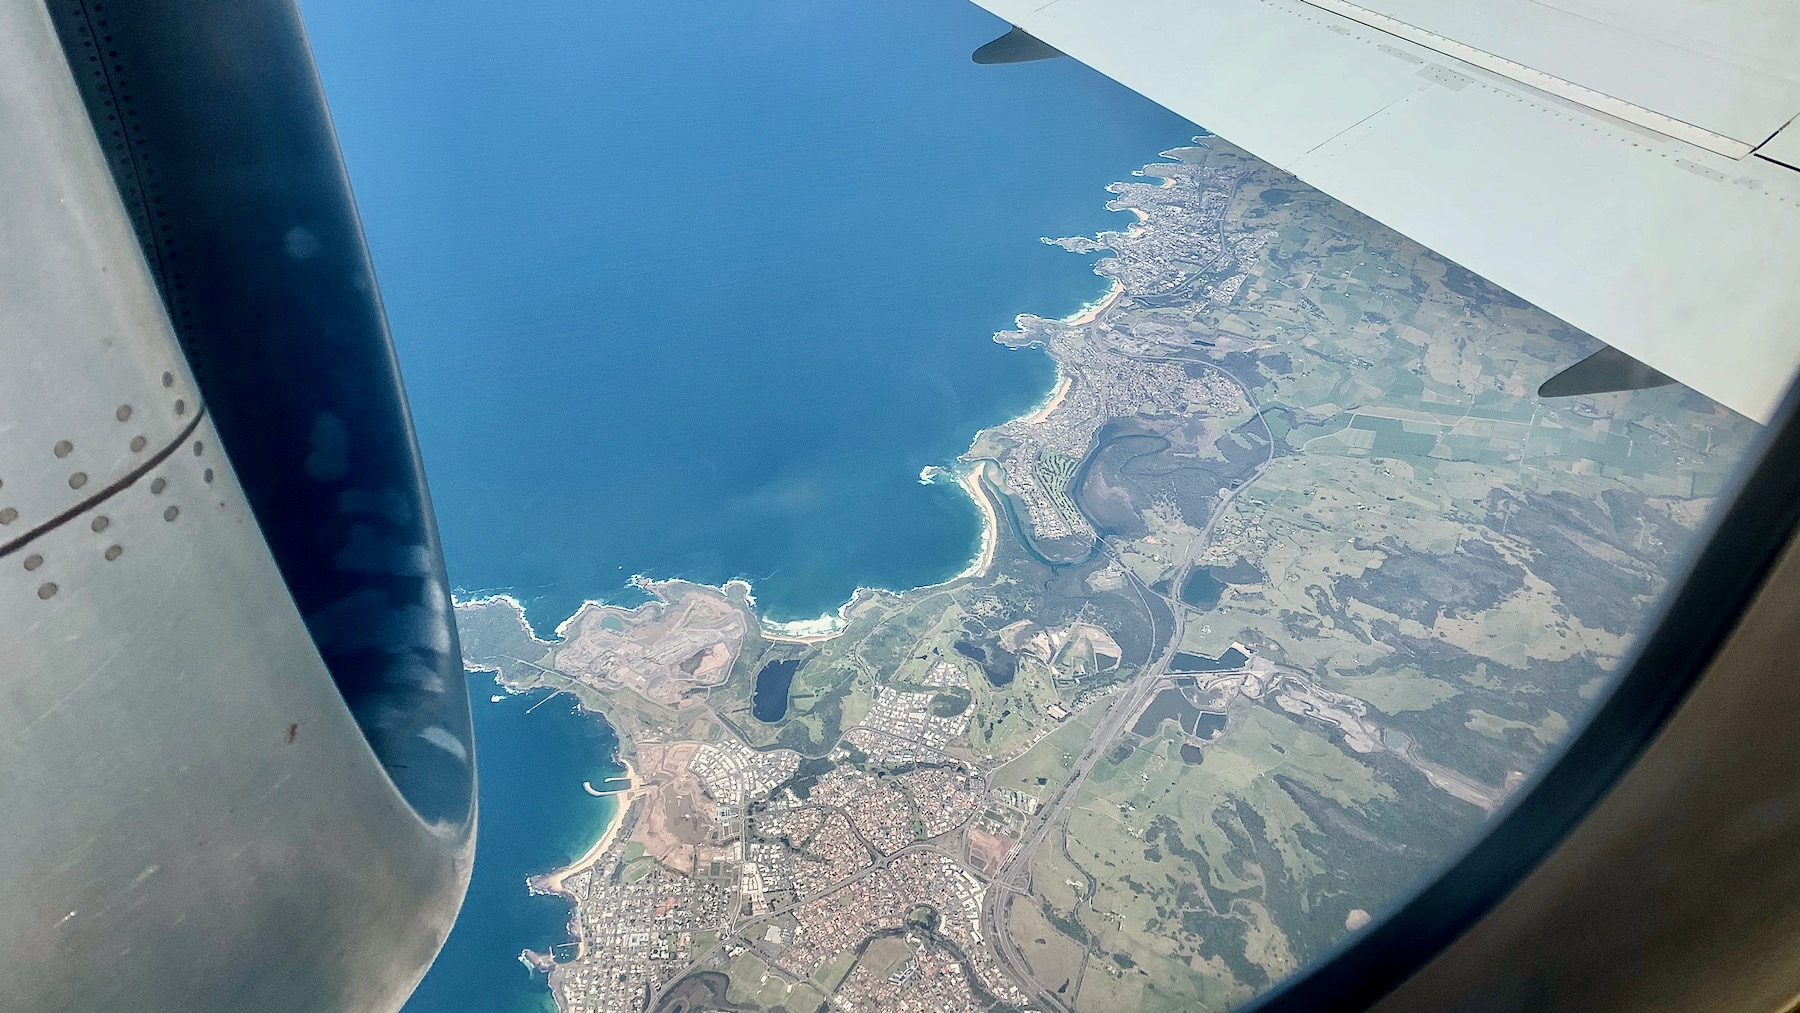 Shellharbour and coast to the south